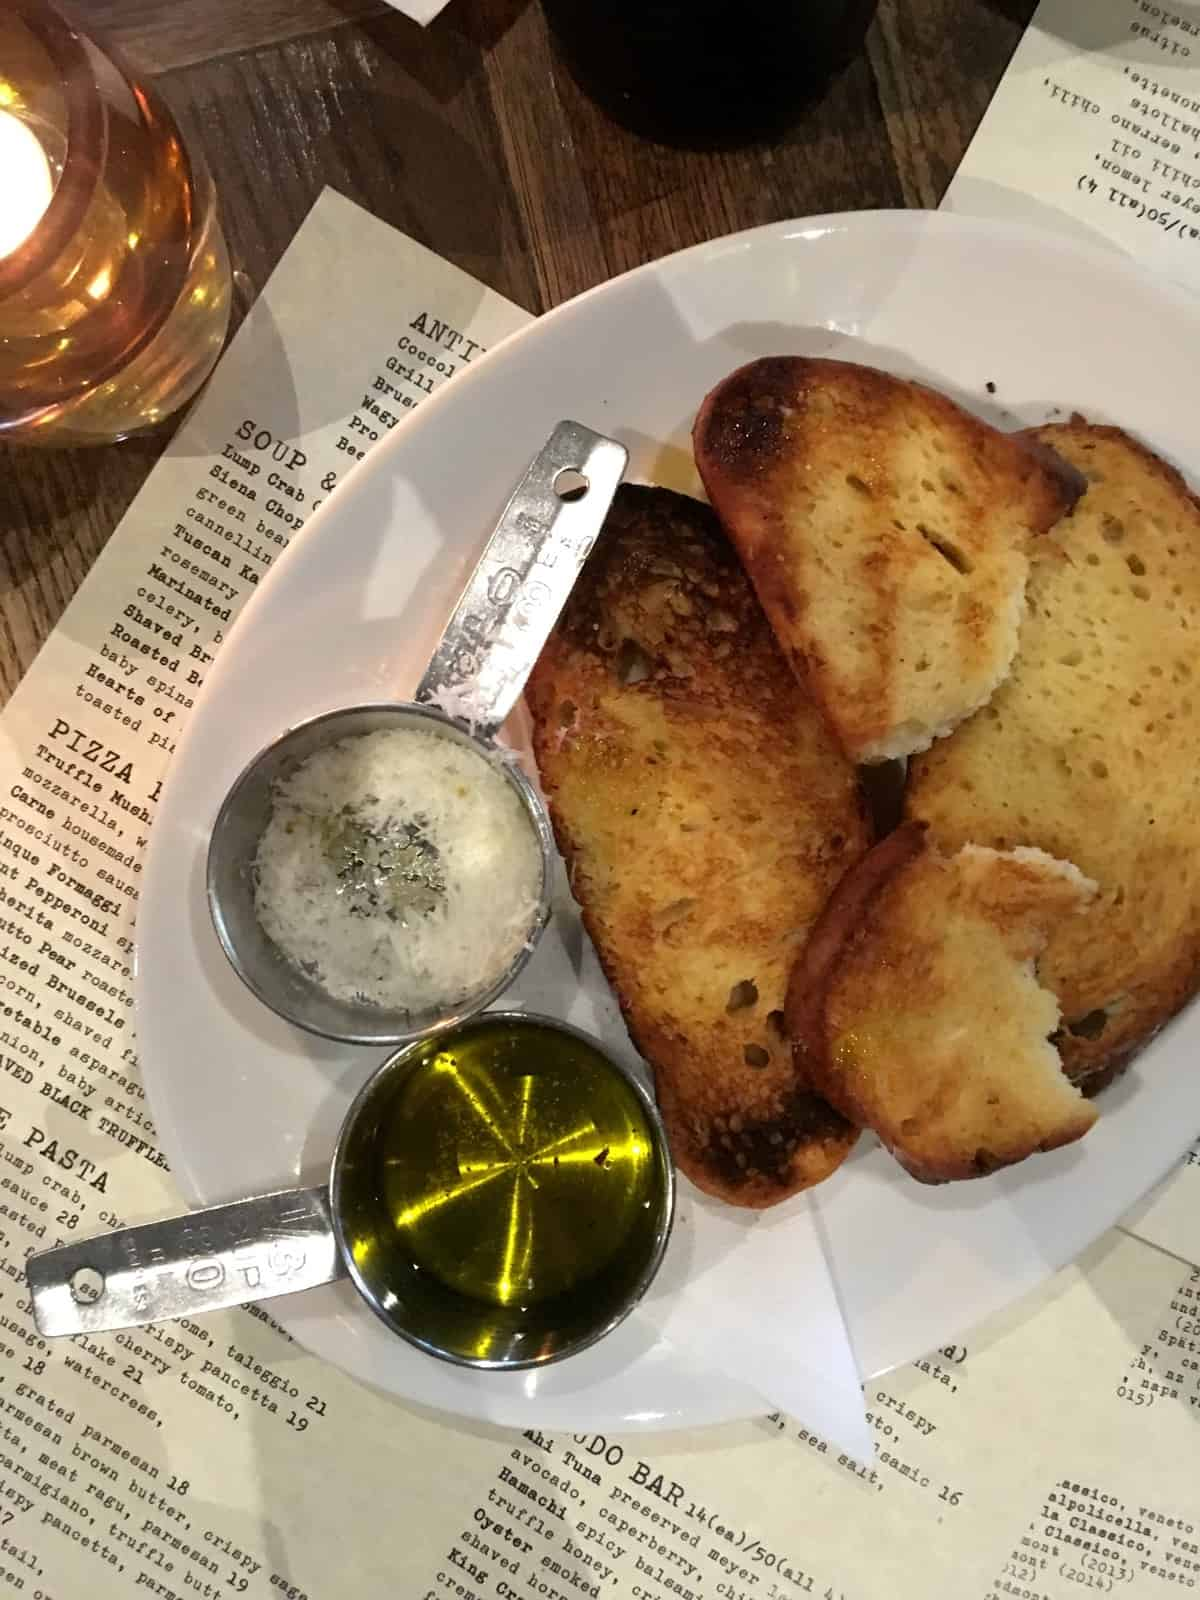 Fresh toasted bread with Parmesan and olive oil